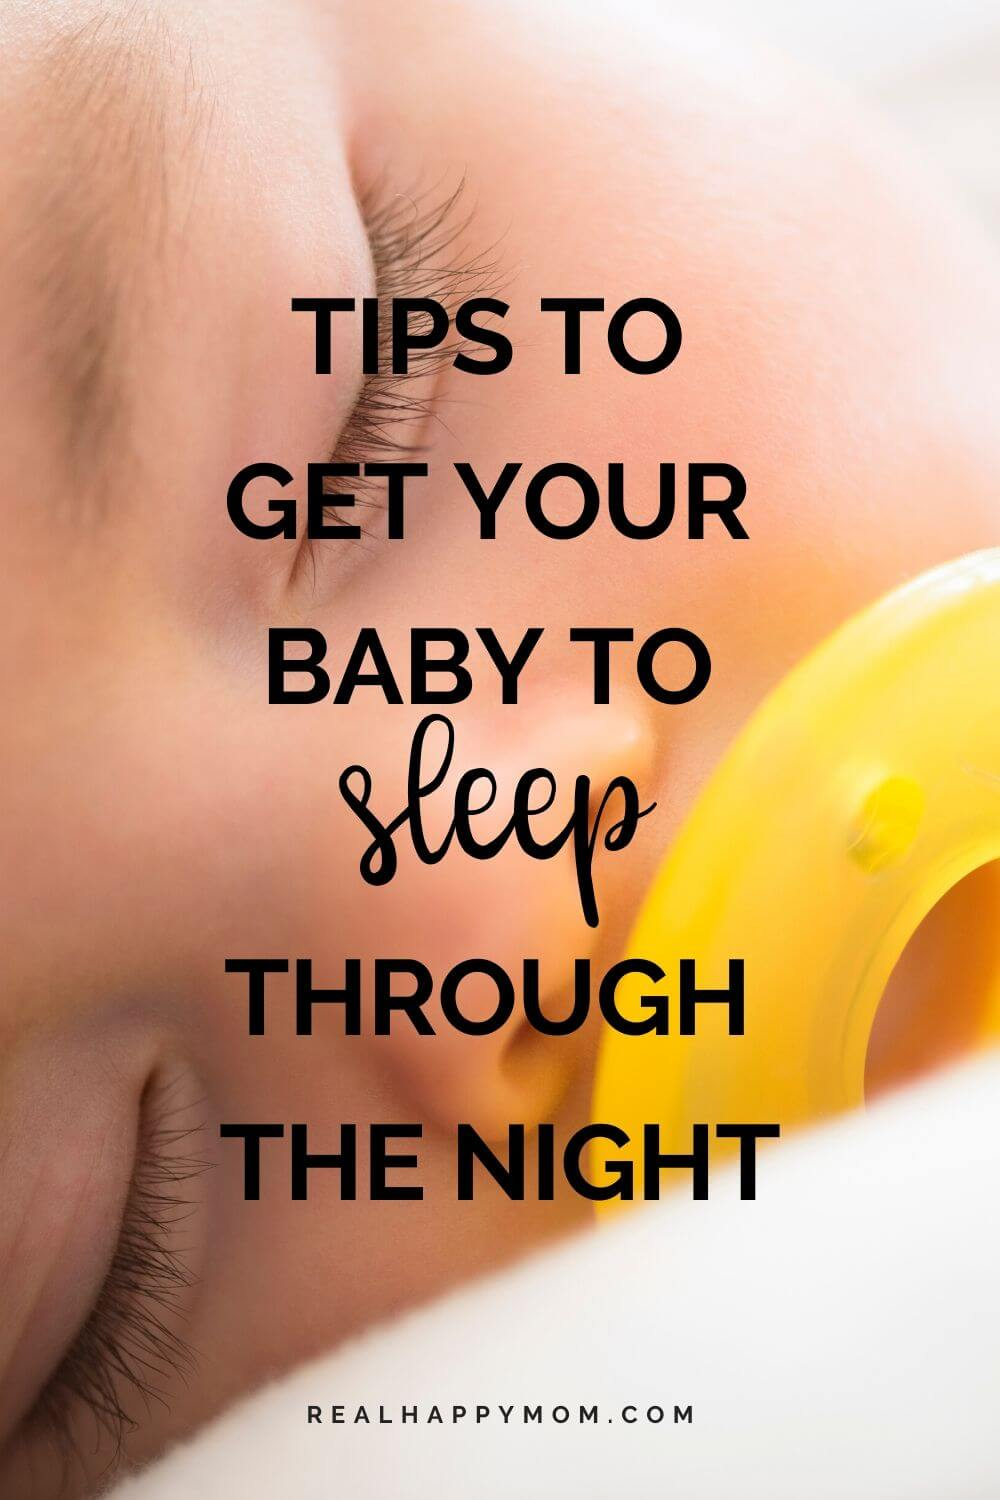 3 Tips to Get Your Baby to Sleep Through the Night